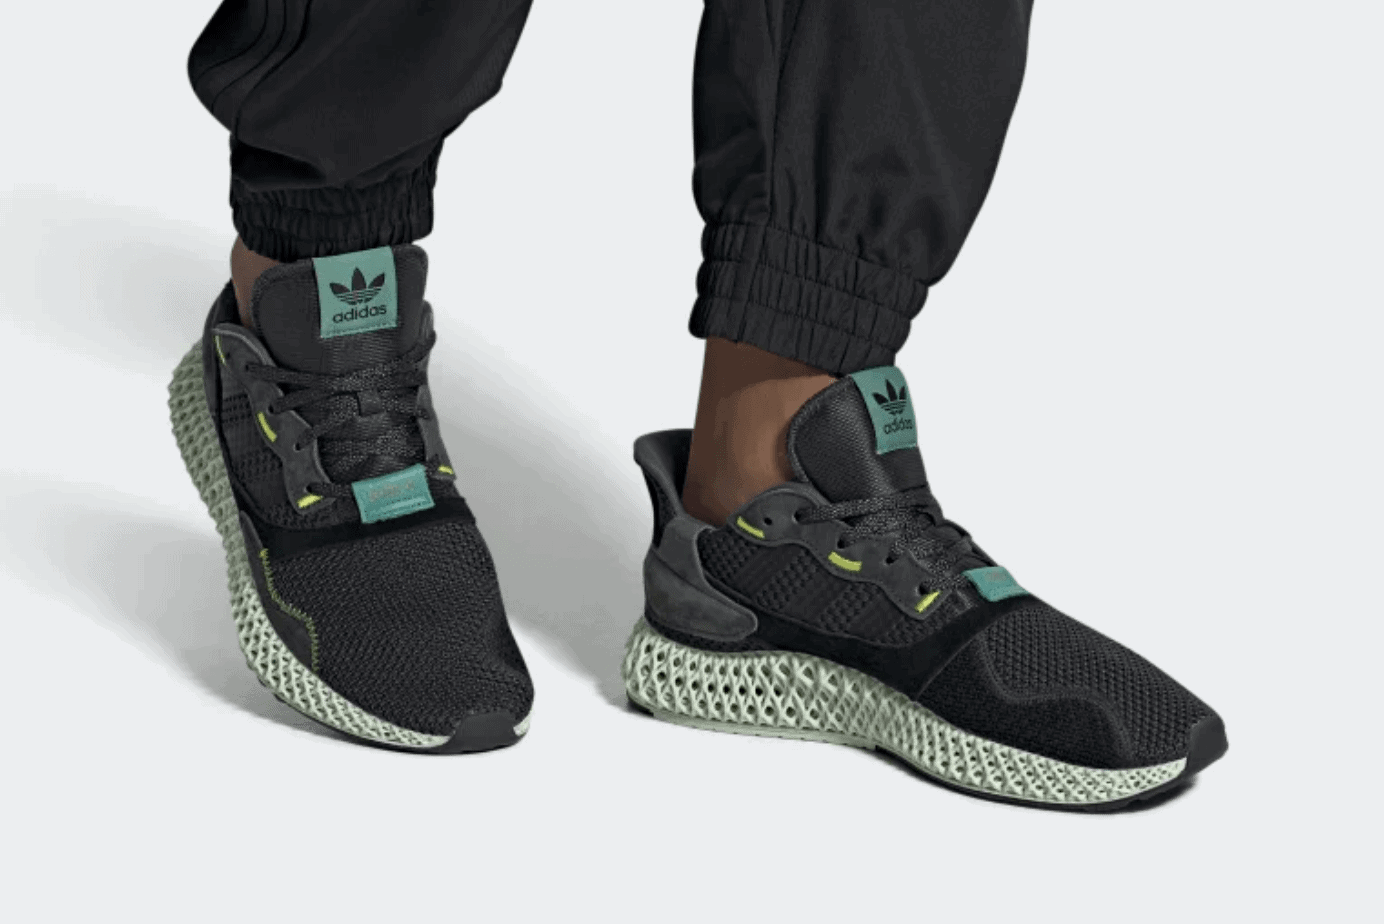 fb58c4e25 While adidas is still working to provide more numbers on their 4D releases